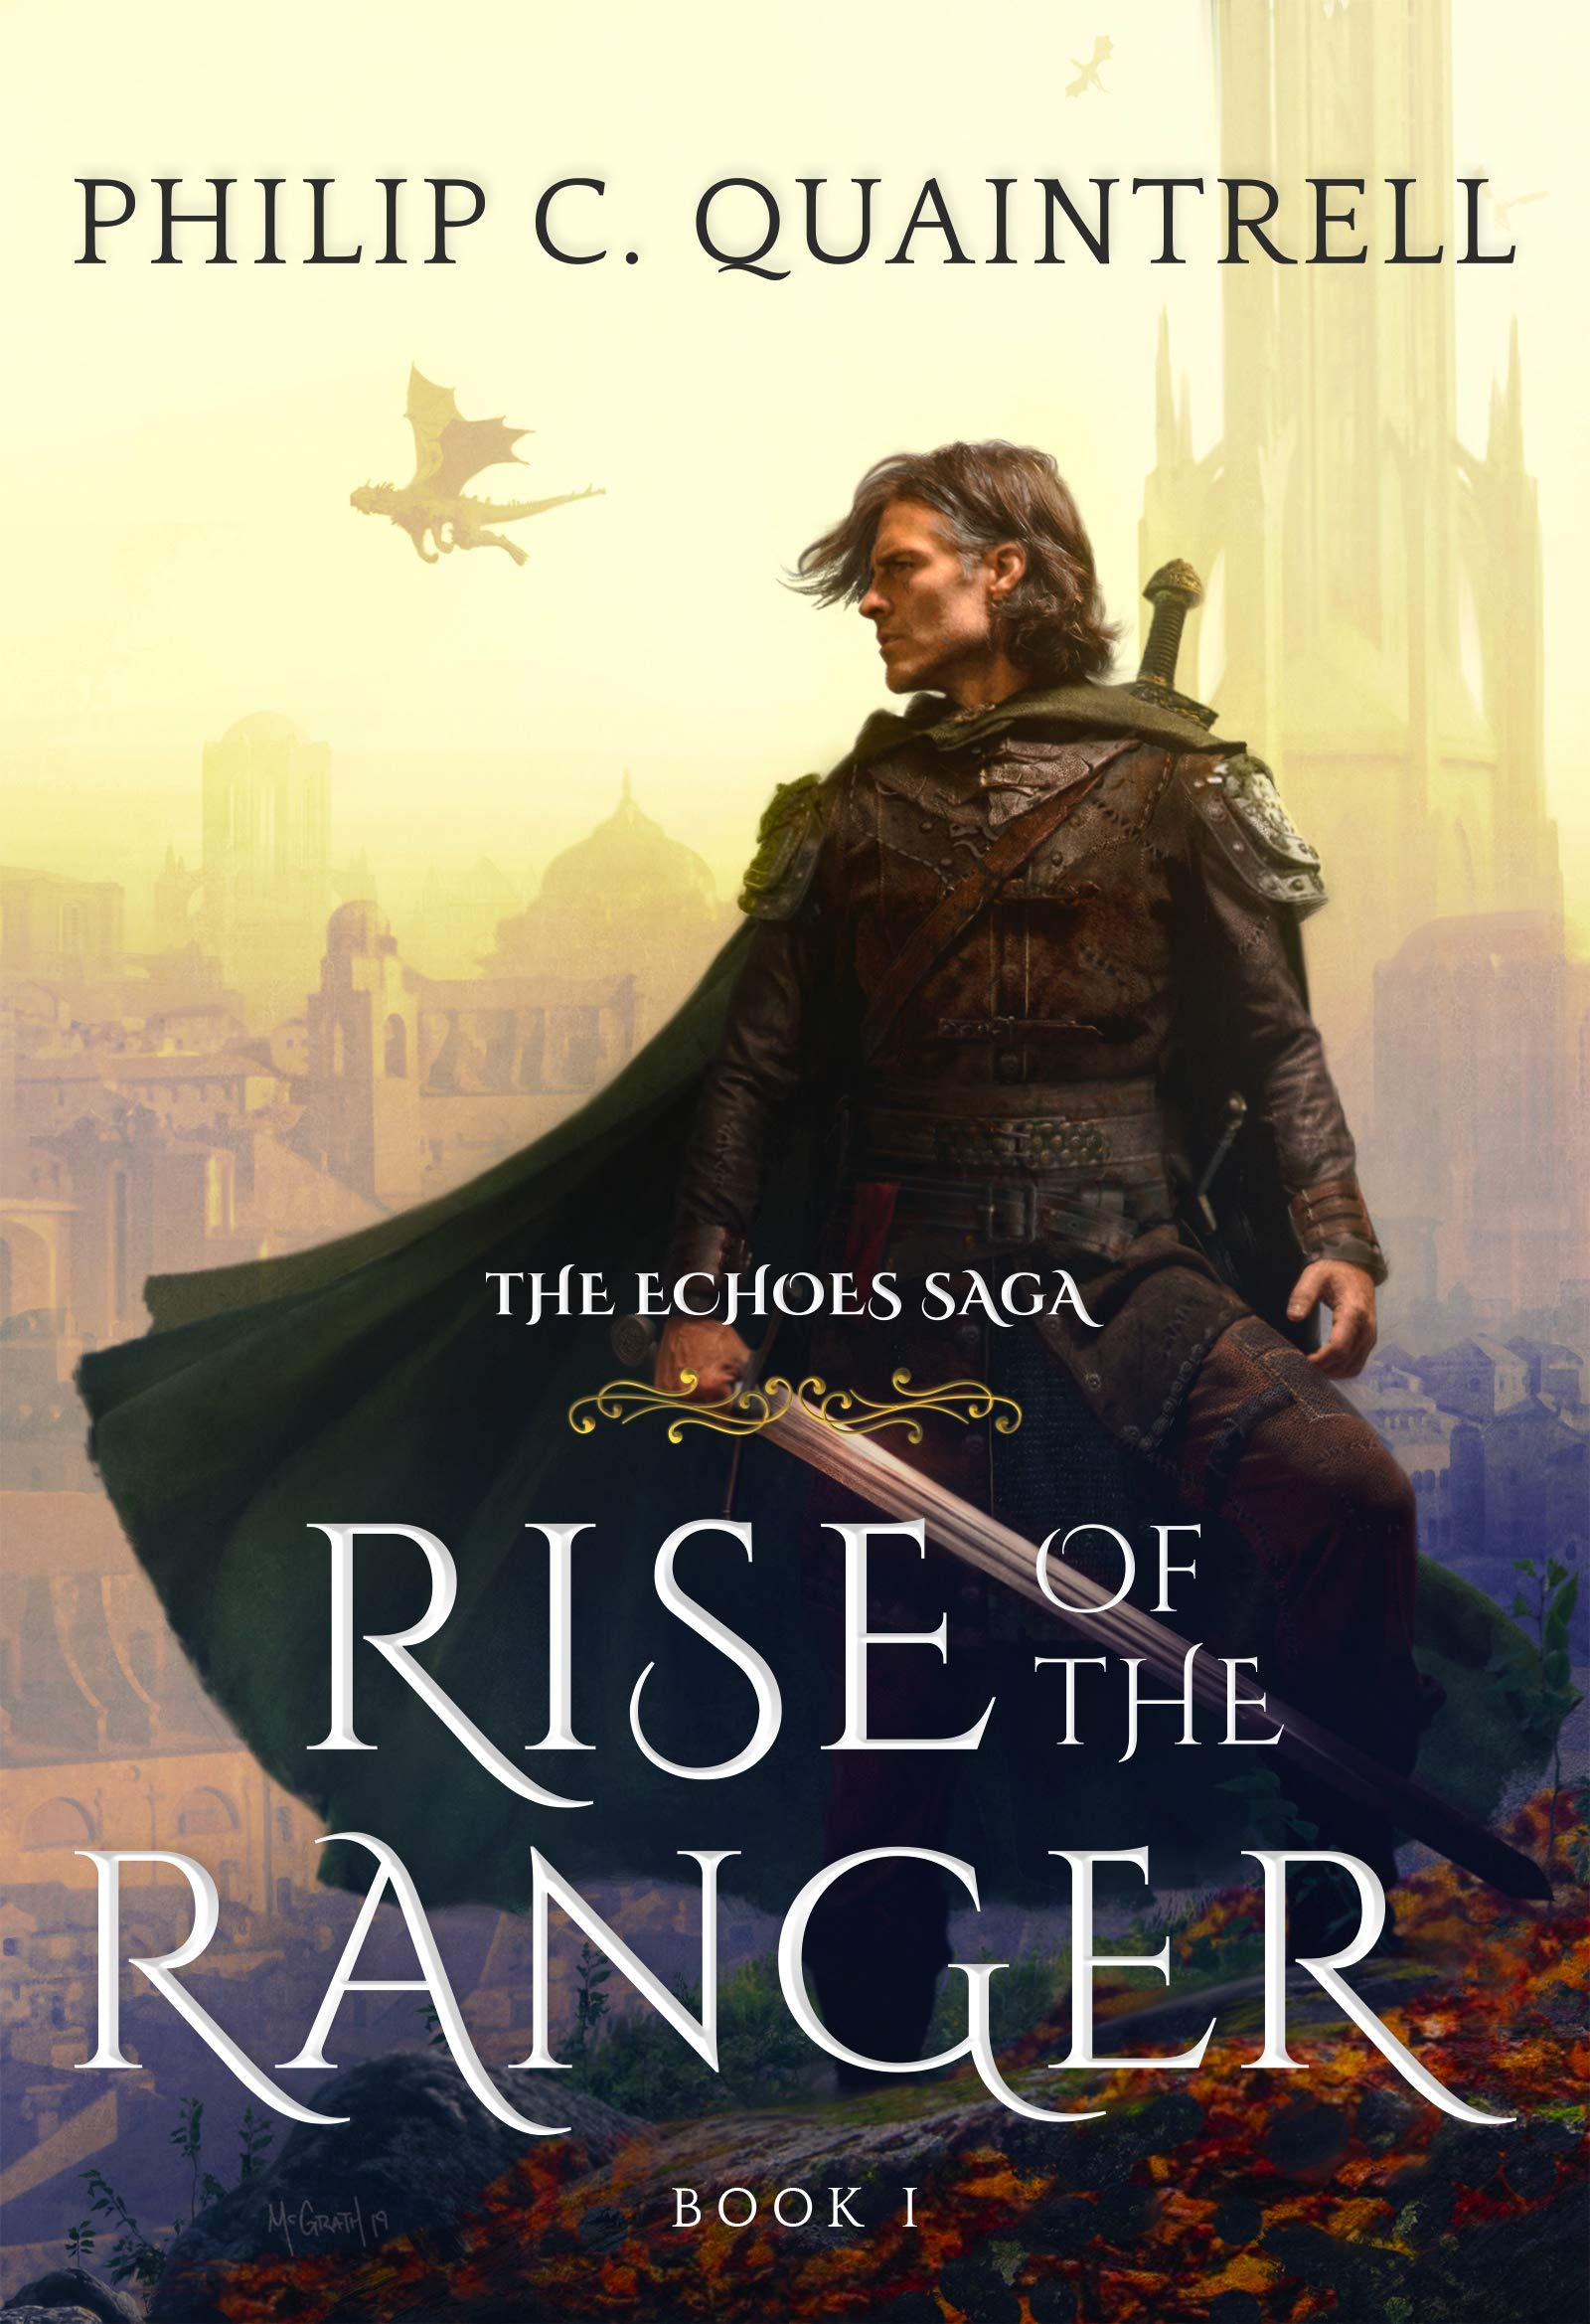 Rise of the Ranger (The Echoes Saga: Book 1)